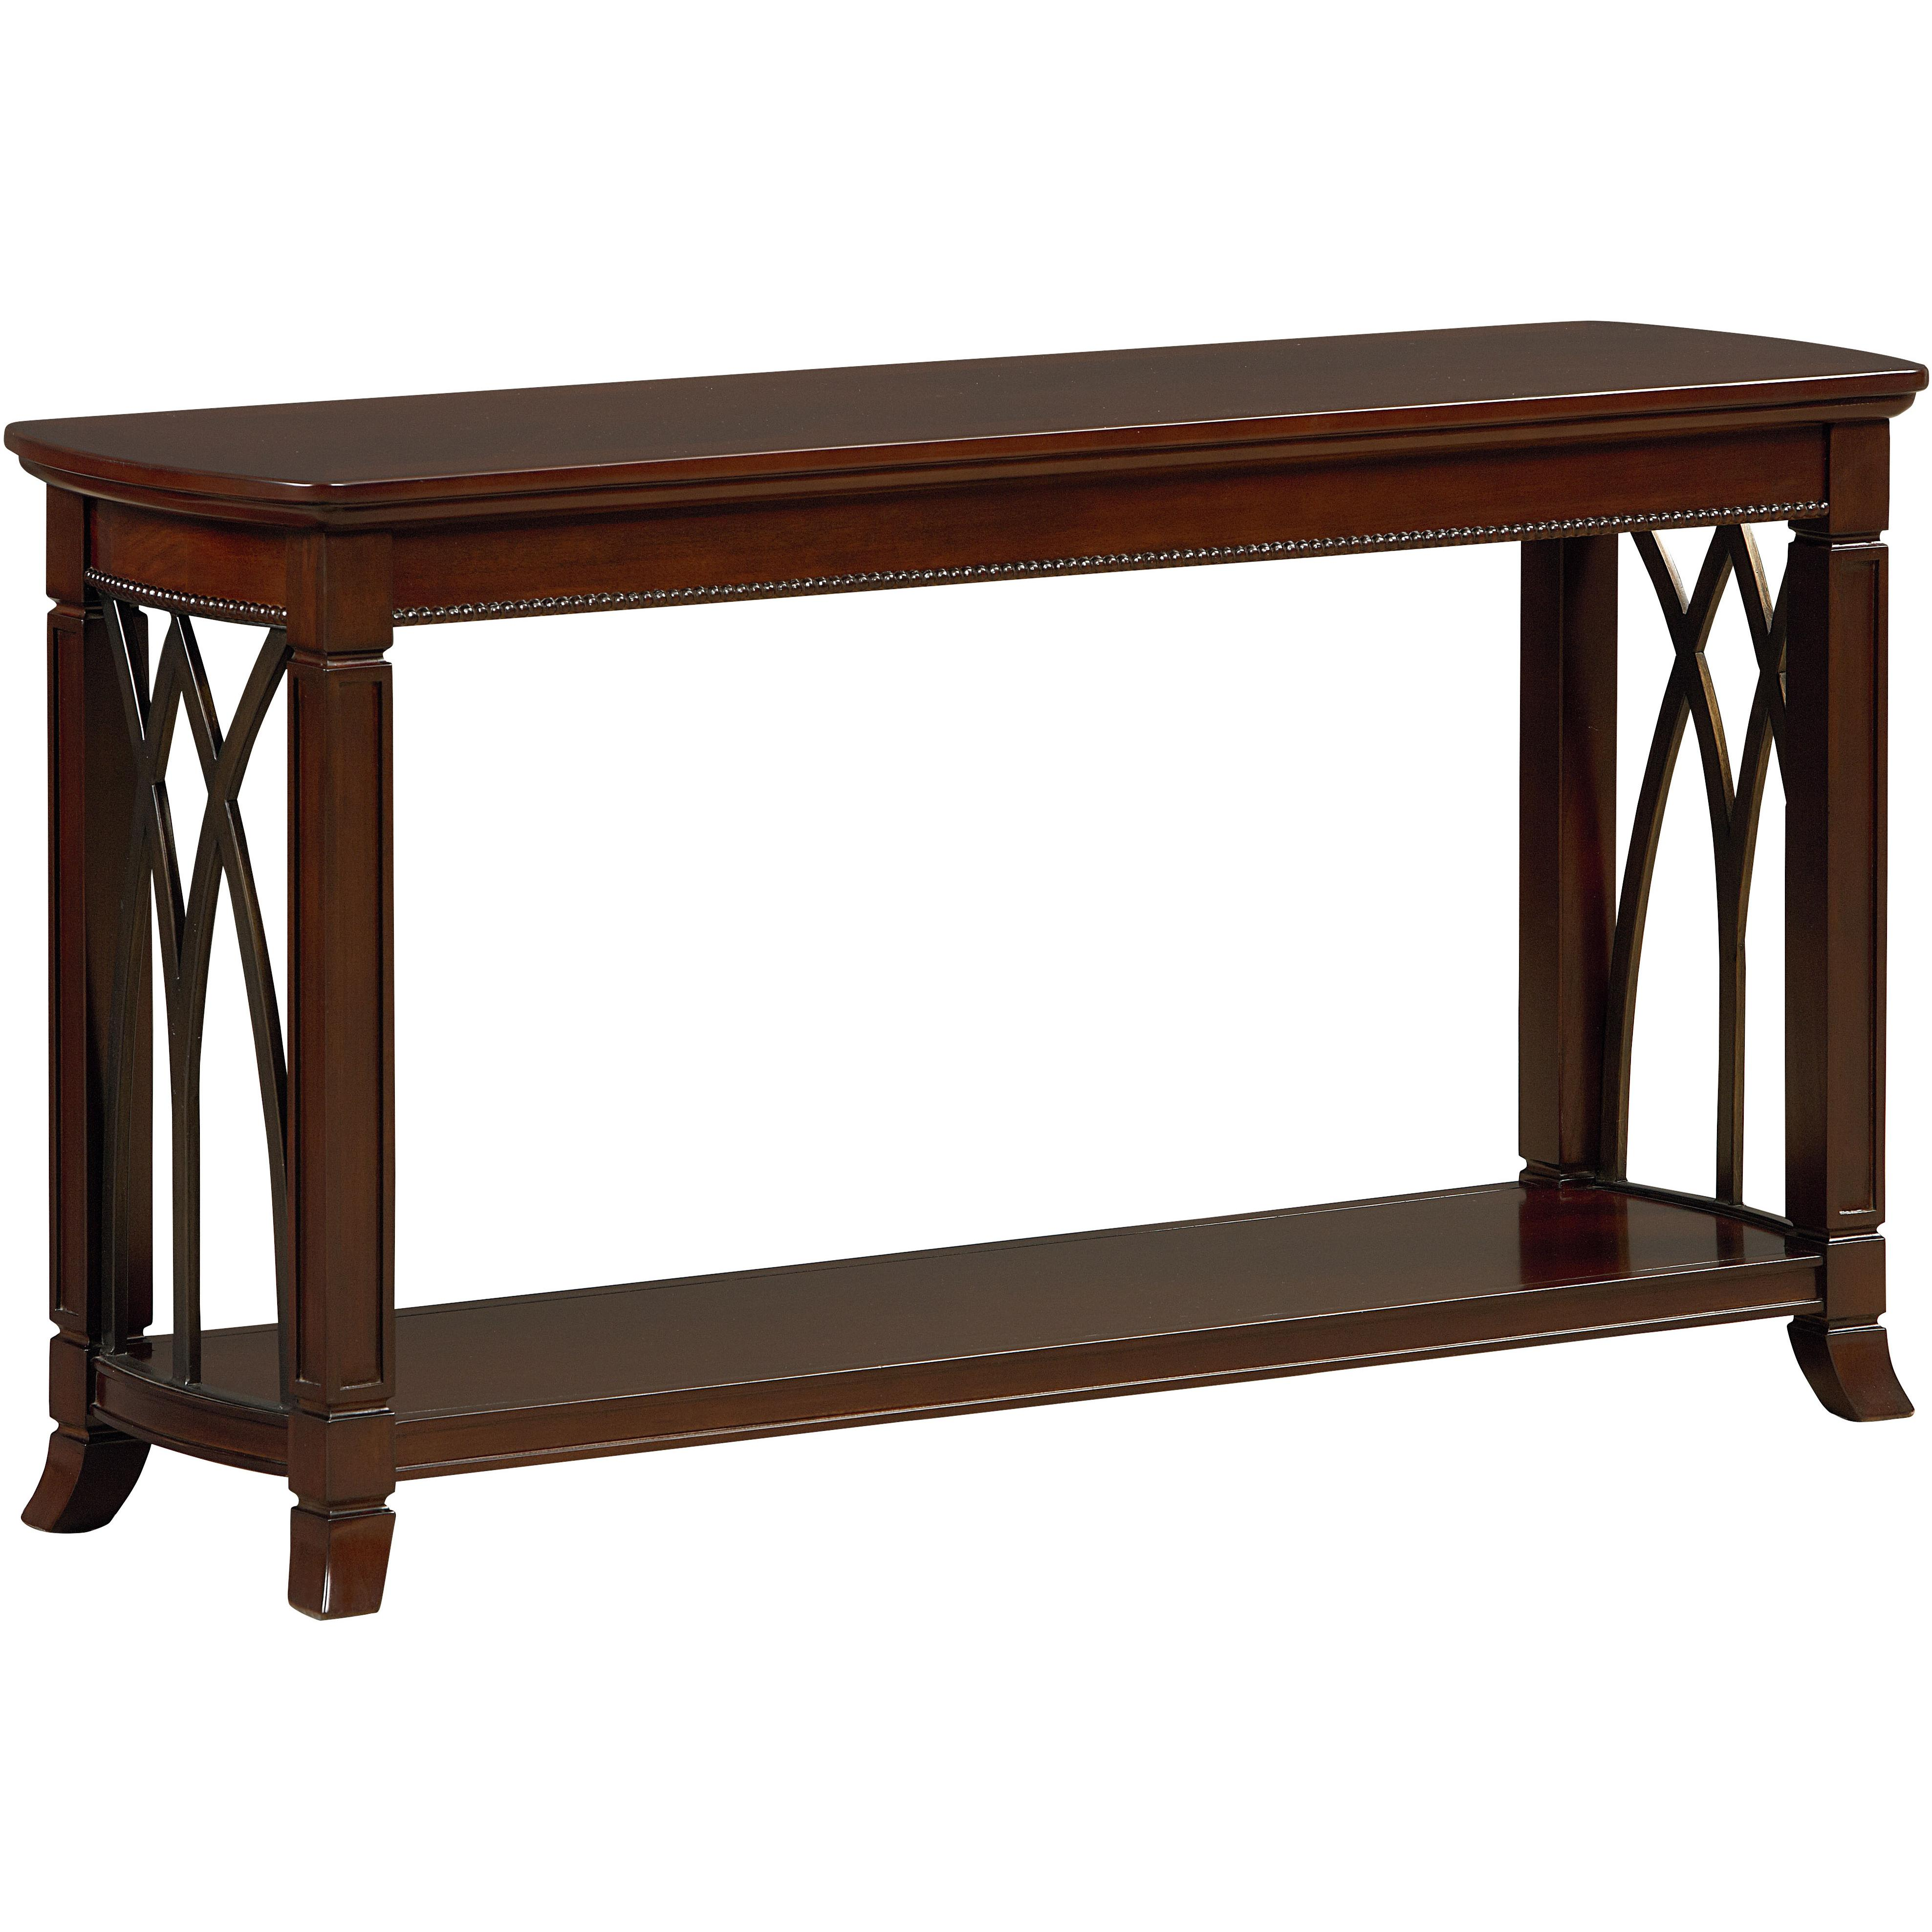 Standard Furniture Abbey Sofa Table - Item Number: 27117